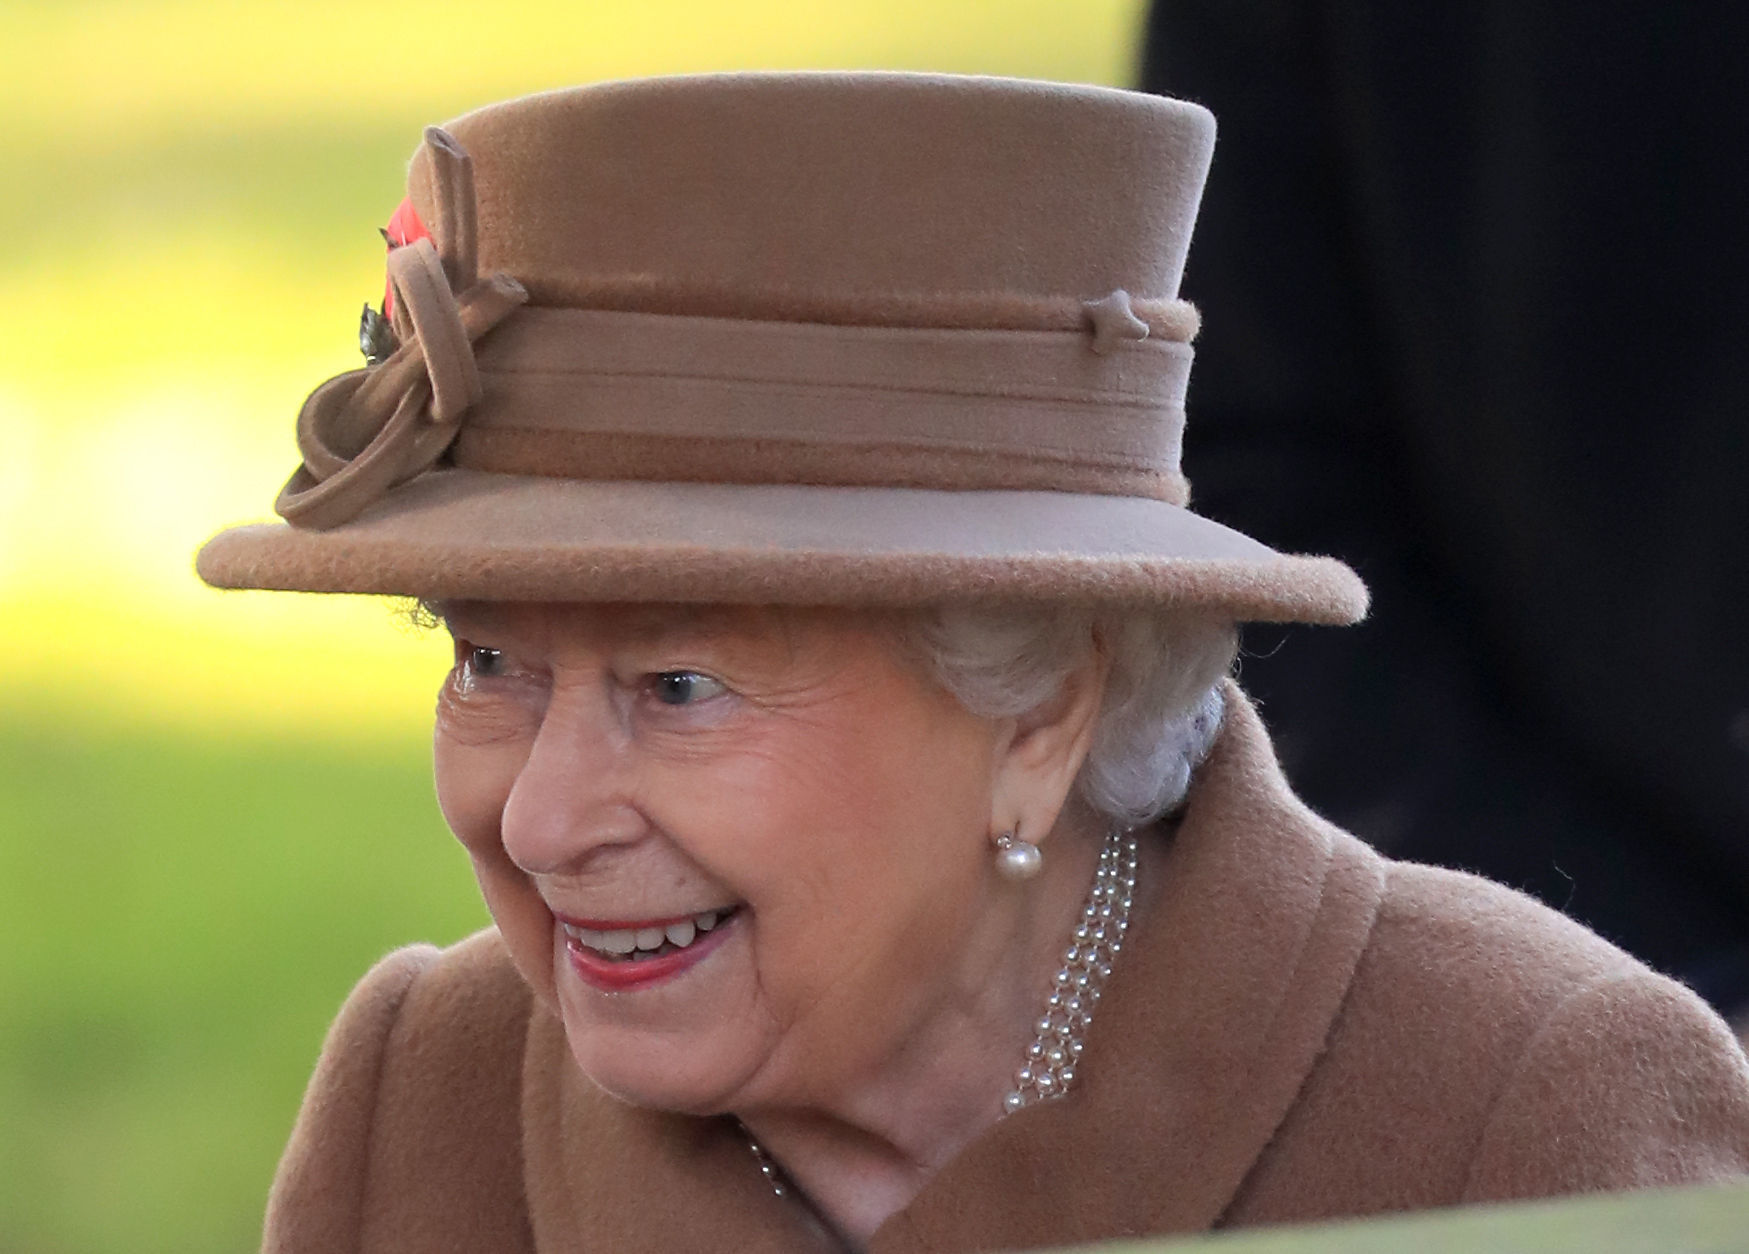 Queen Elizabeth II attends a service at St Peter's church in Wolferton, near the Sandringham Estate. PRESS ASSOCIATION Photo. Picture date: Sunday January 20, 2019. See PA story ROYAL Queen. Photo credit should read: Gareth Fuller/PA Wire.